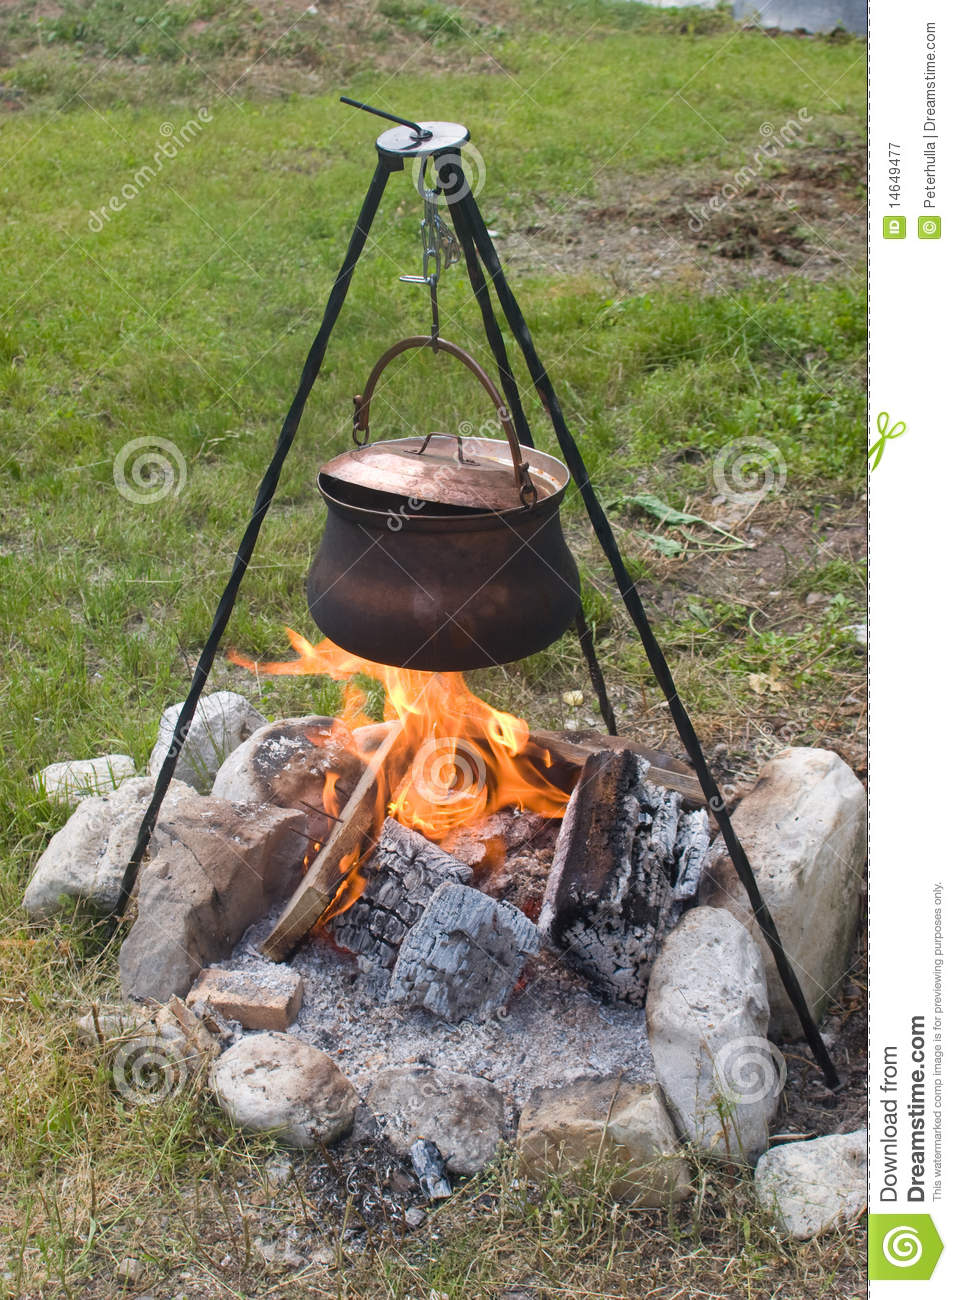 Tripod Campfire Cooking Royalty Free Stock Photography